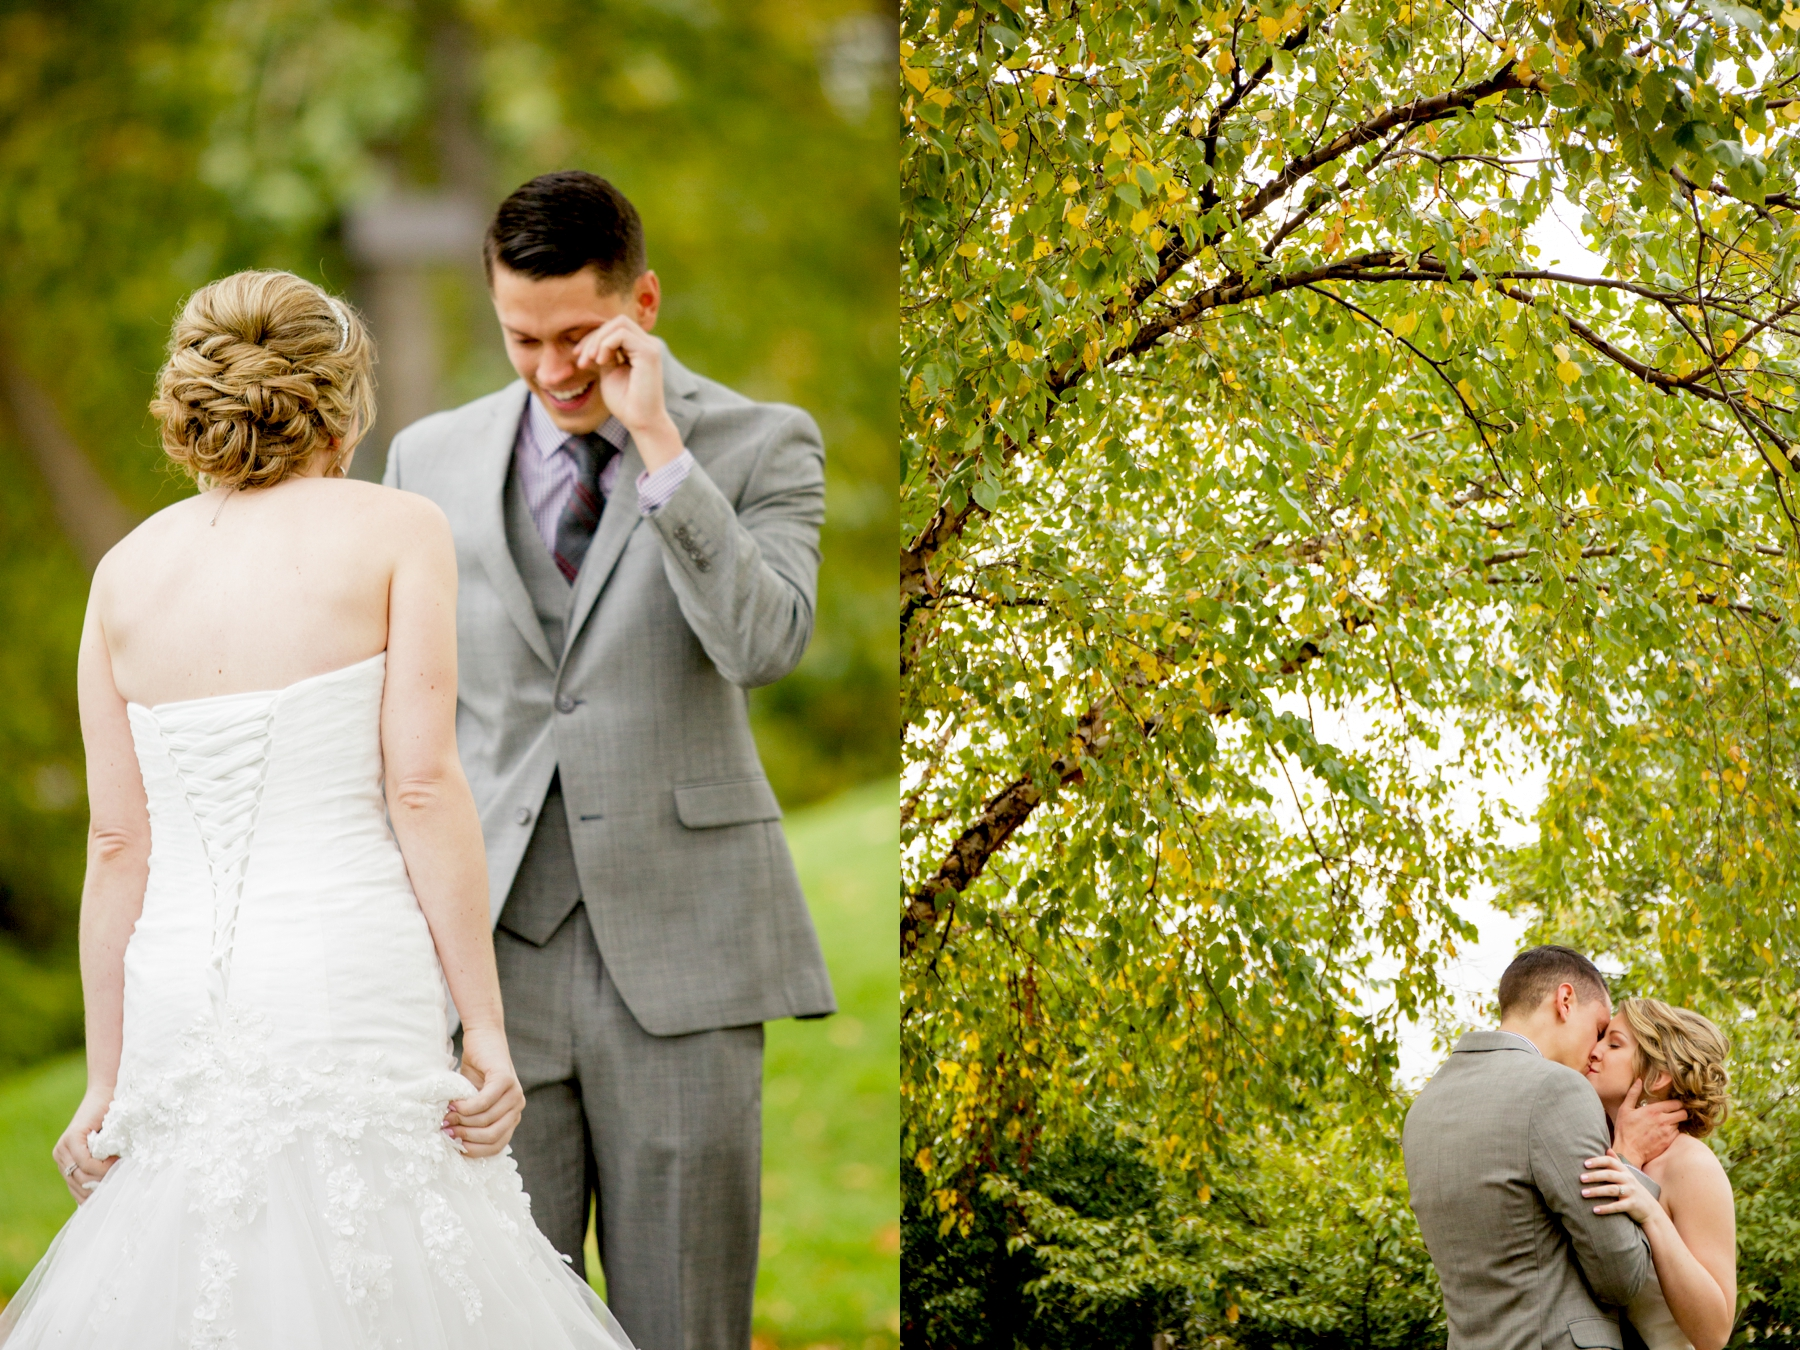 Brandon_Shafer_Photography_Kristen_Corey_Downtown_Grand_Rapids_Fall_Wedding0018.JPG